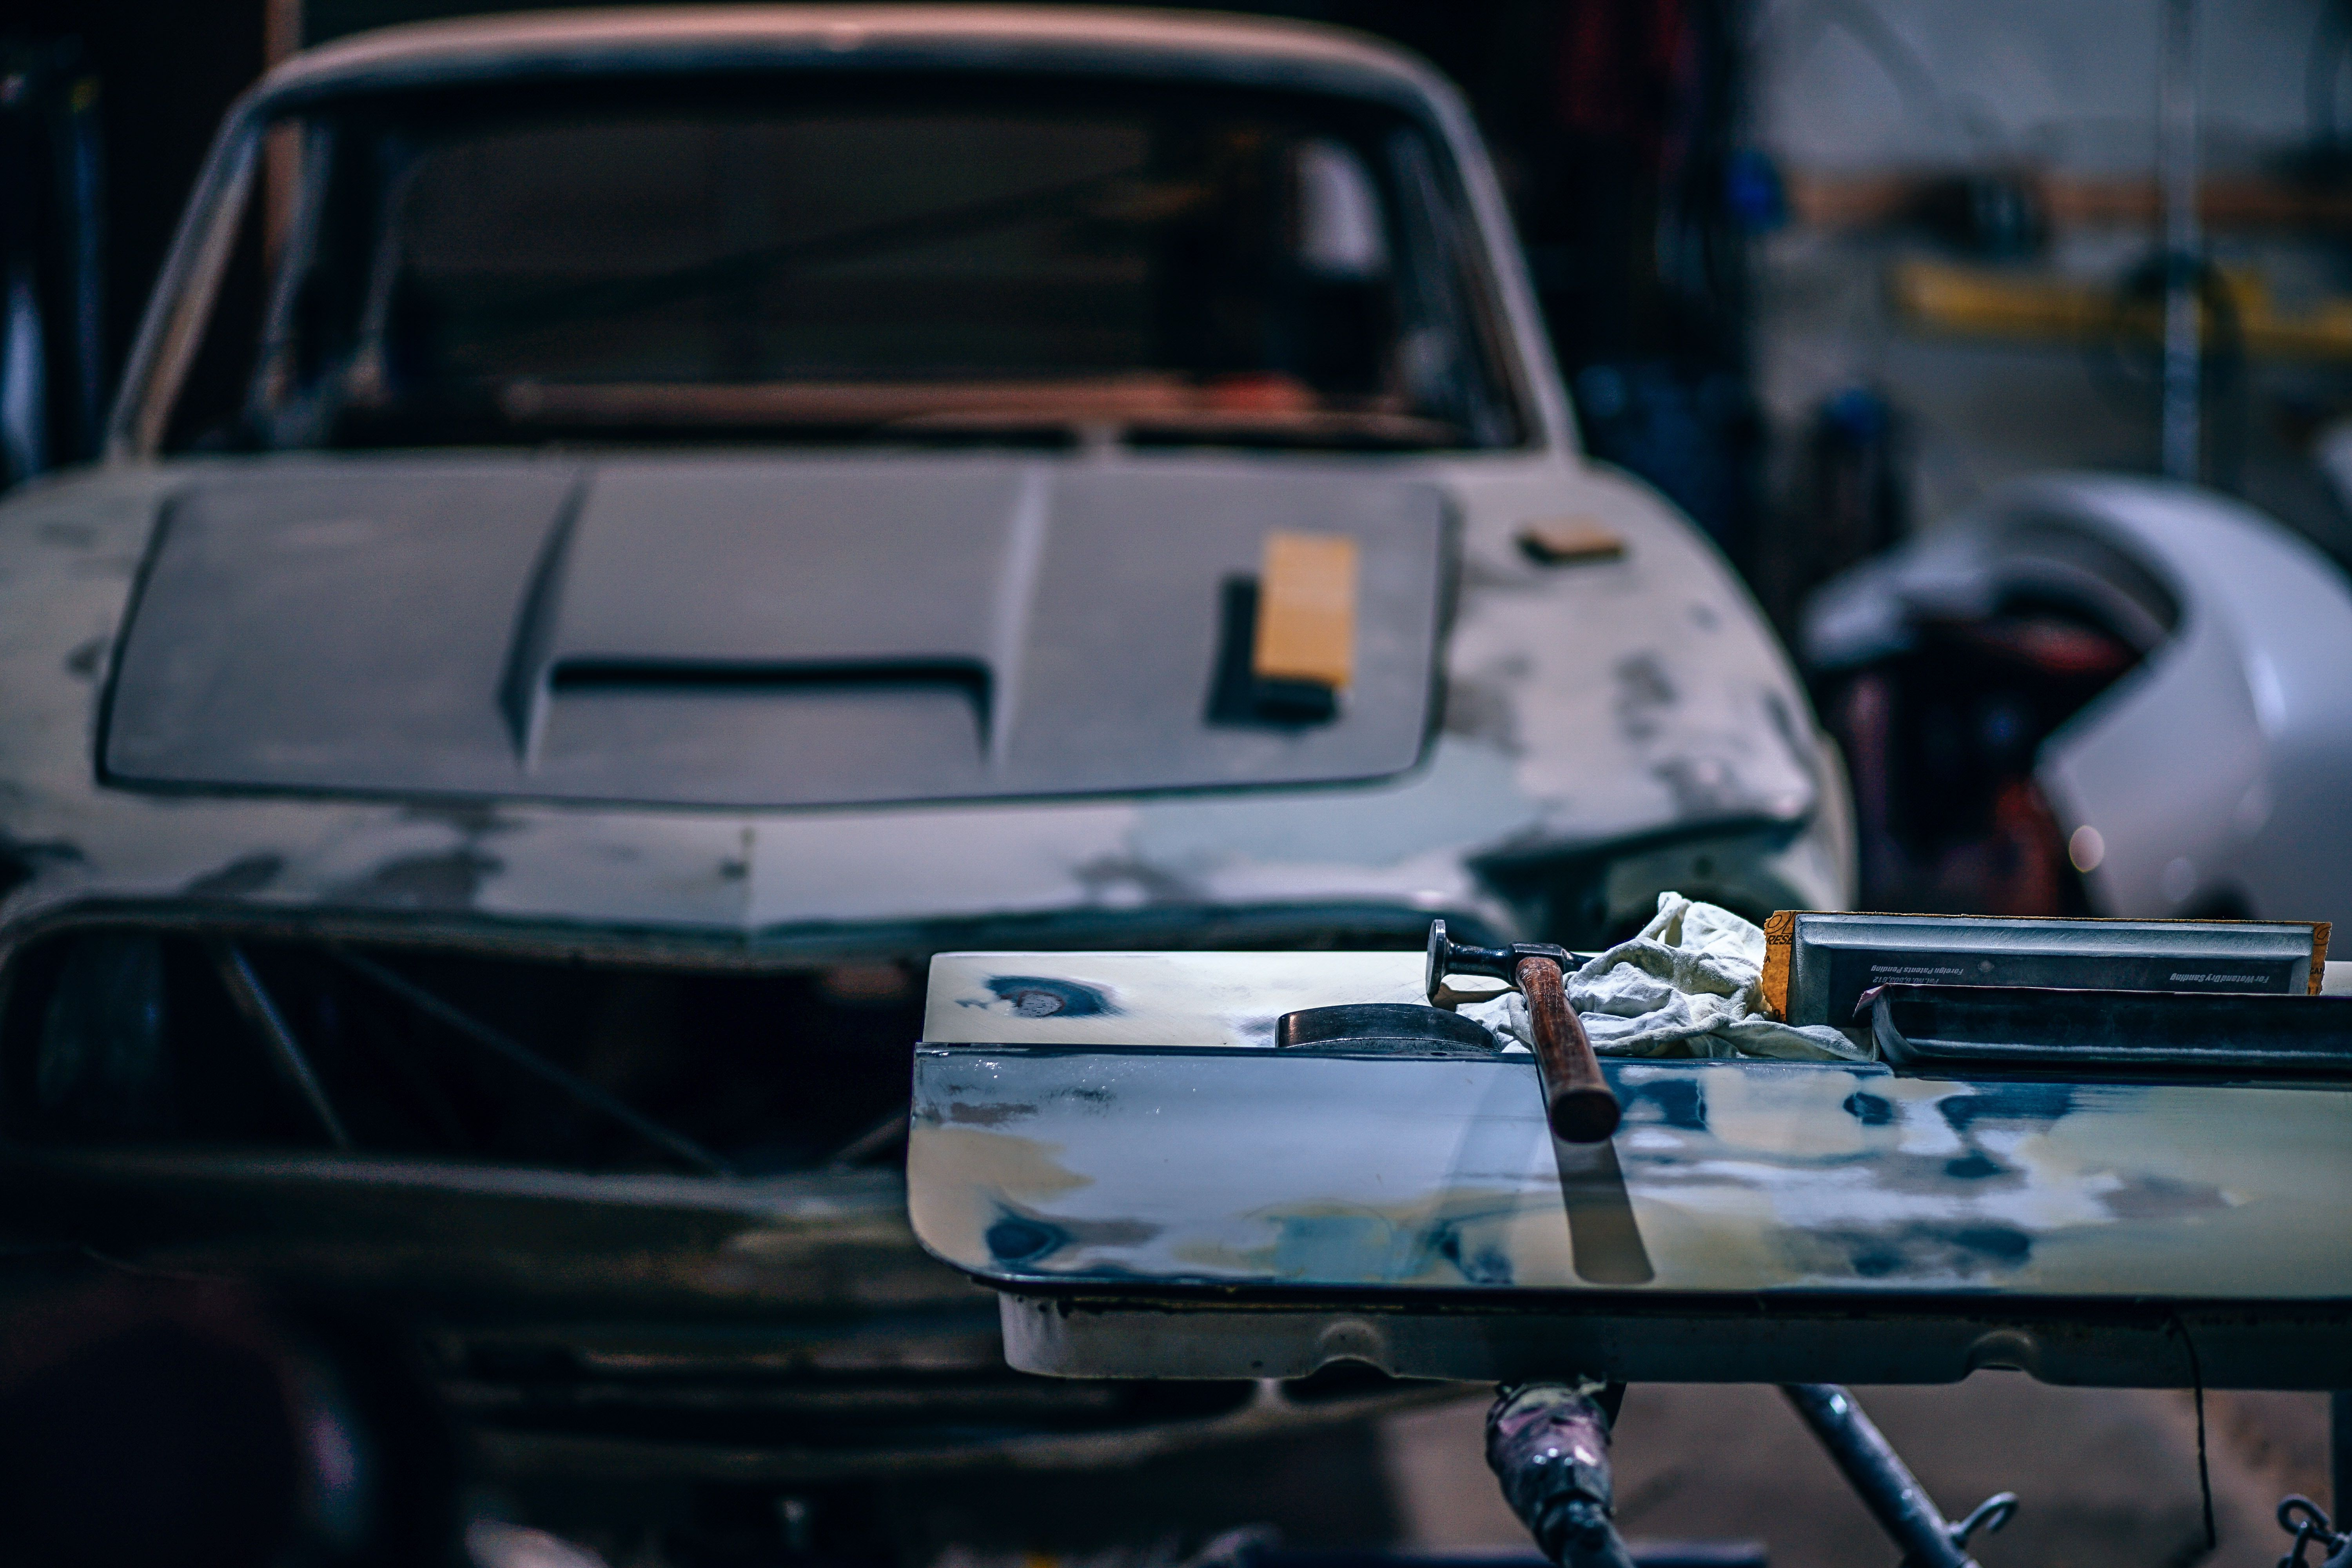 fresno auto body repair and painting auto body repair shop in rh pinterest com